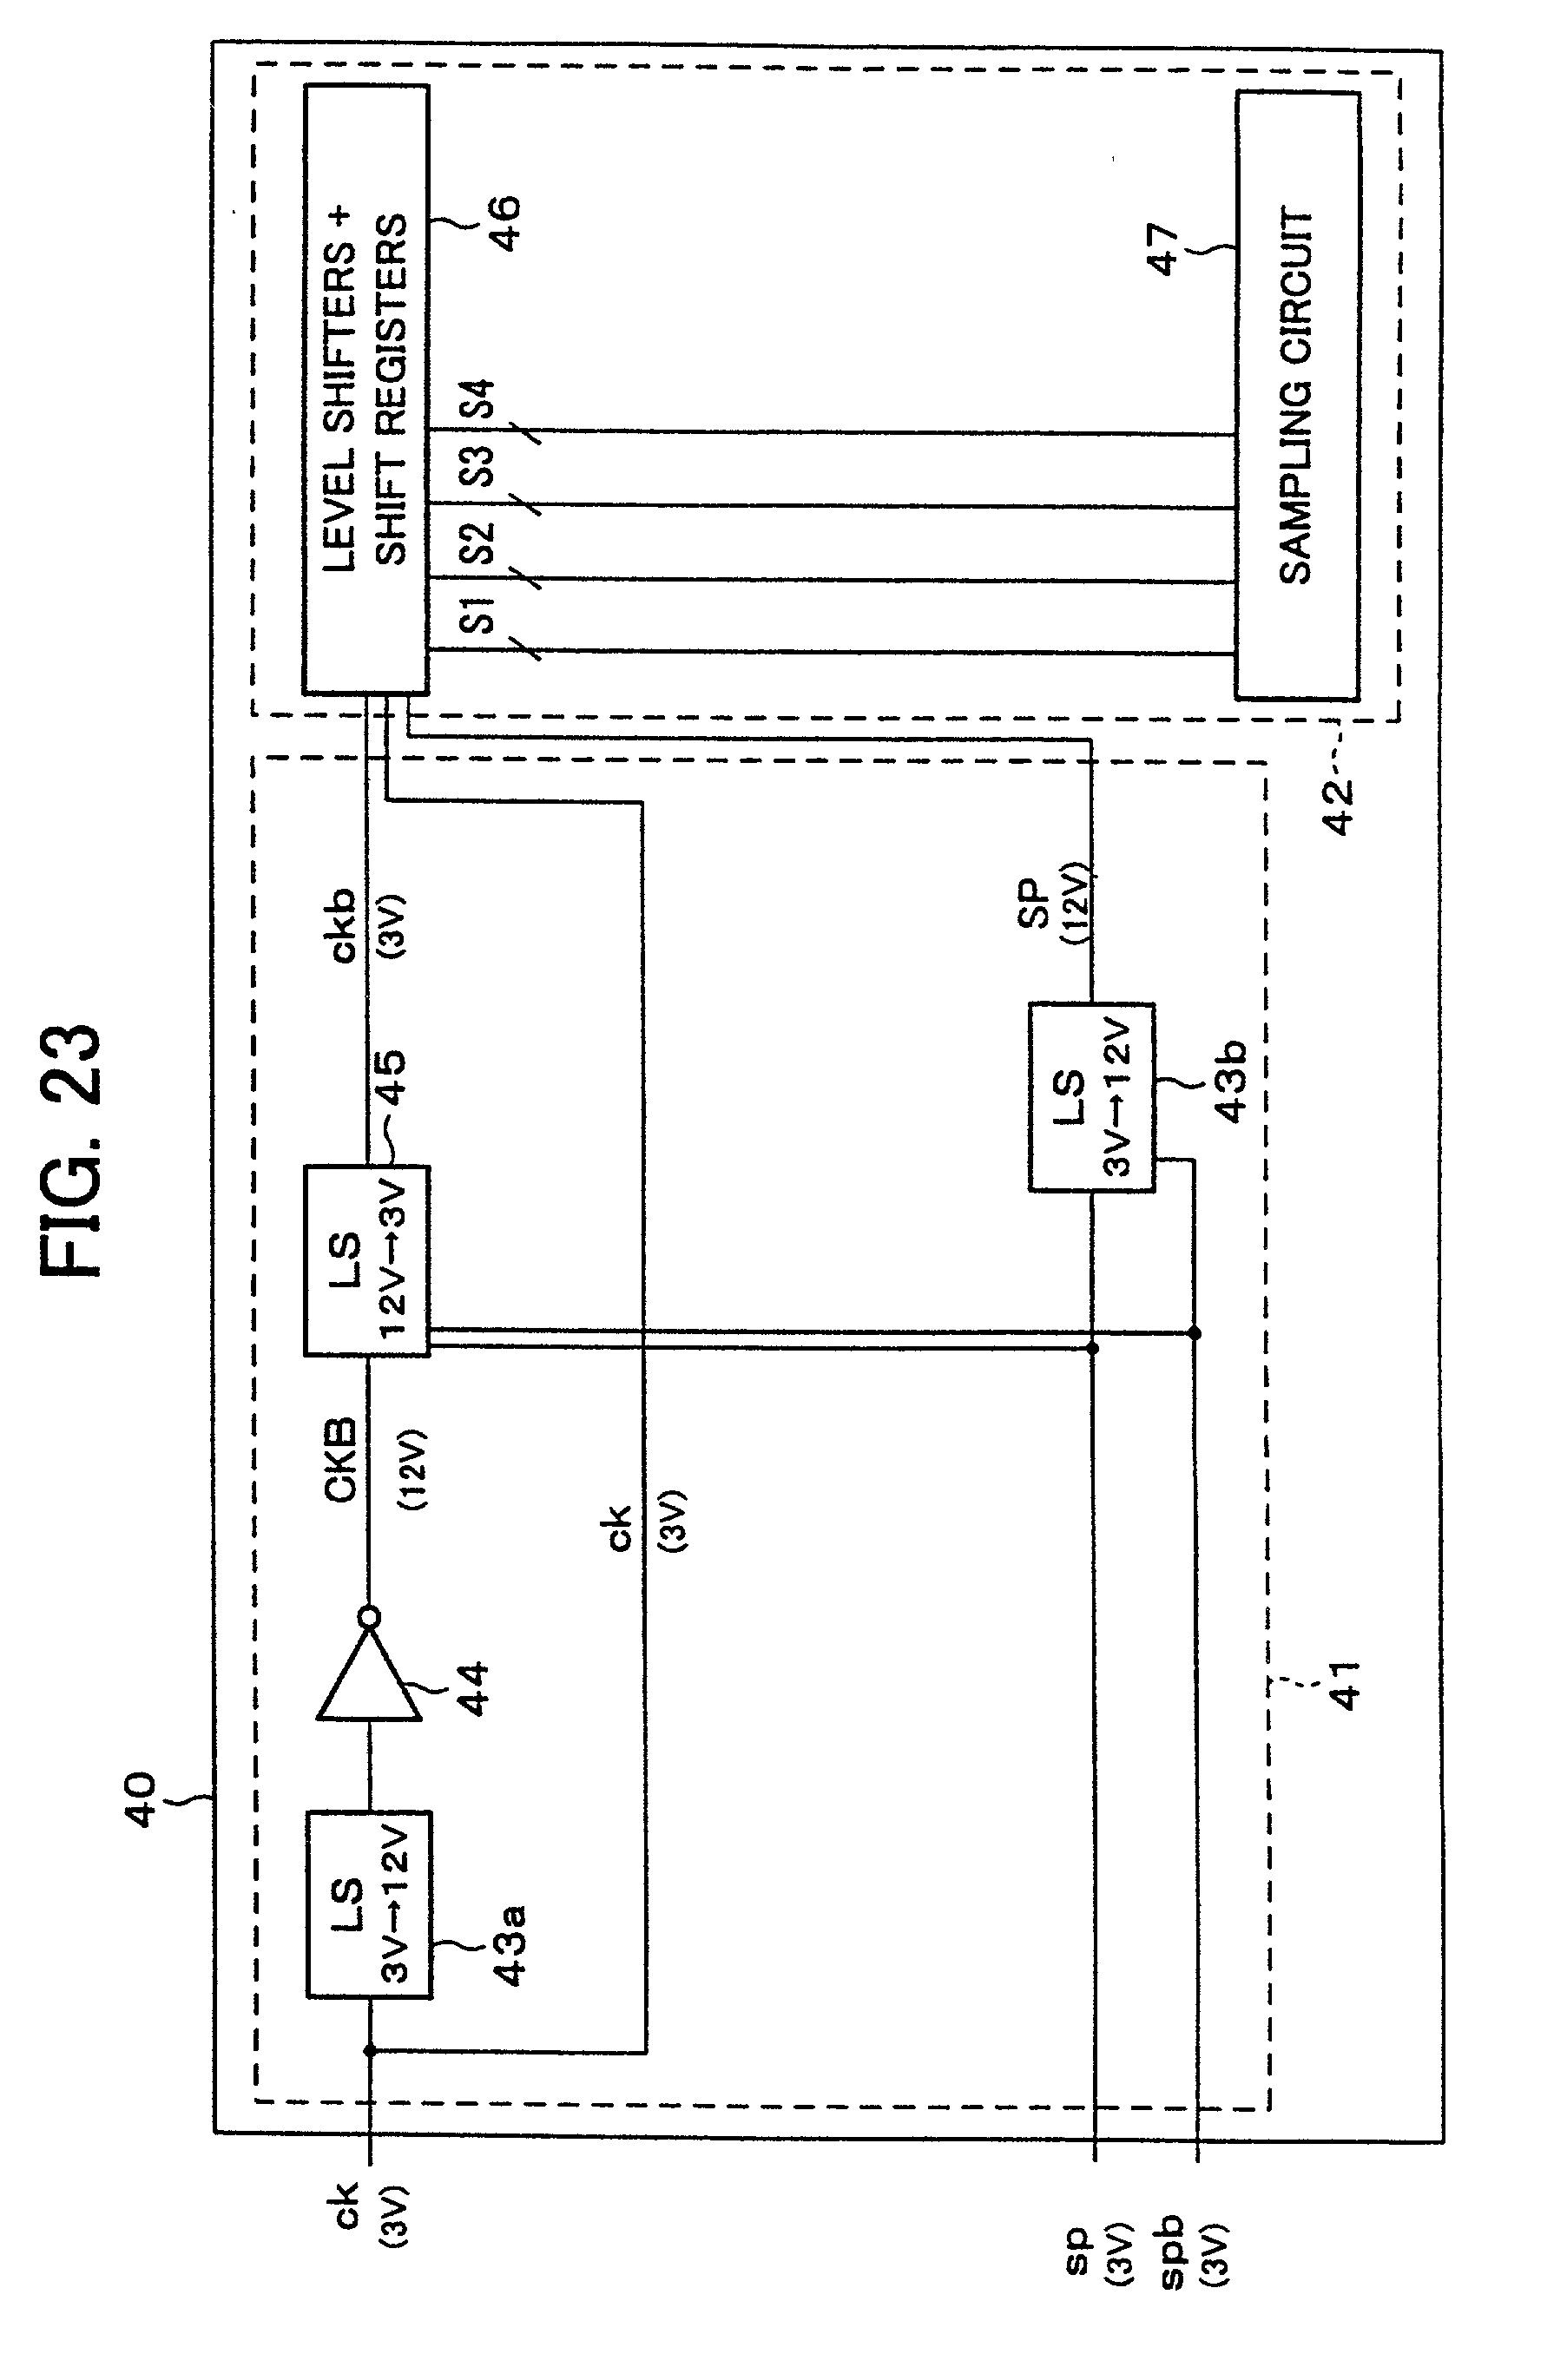 Low Voltage Signal Generator : Patent us signal processing circuit low voltage